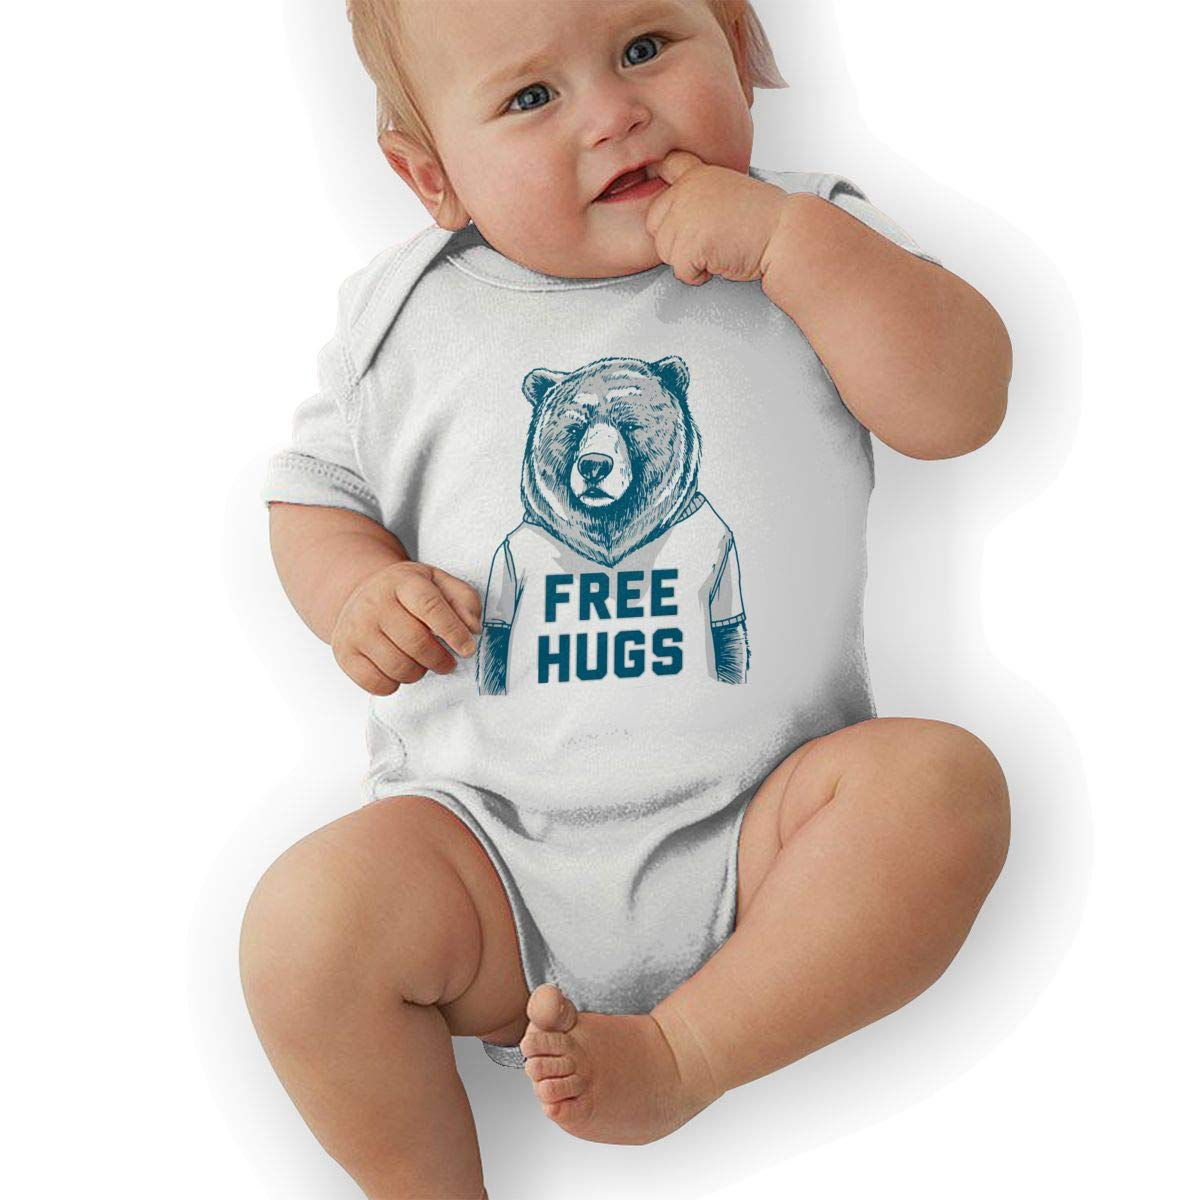 Newborn Baby Boys Bodysuit Short-Sleeve Onesie Free Hugs Print Jumpsuit Winter Pajamas